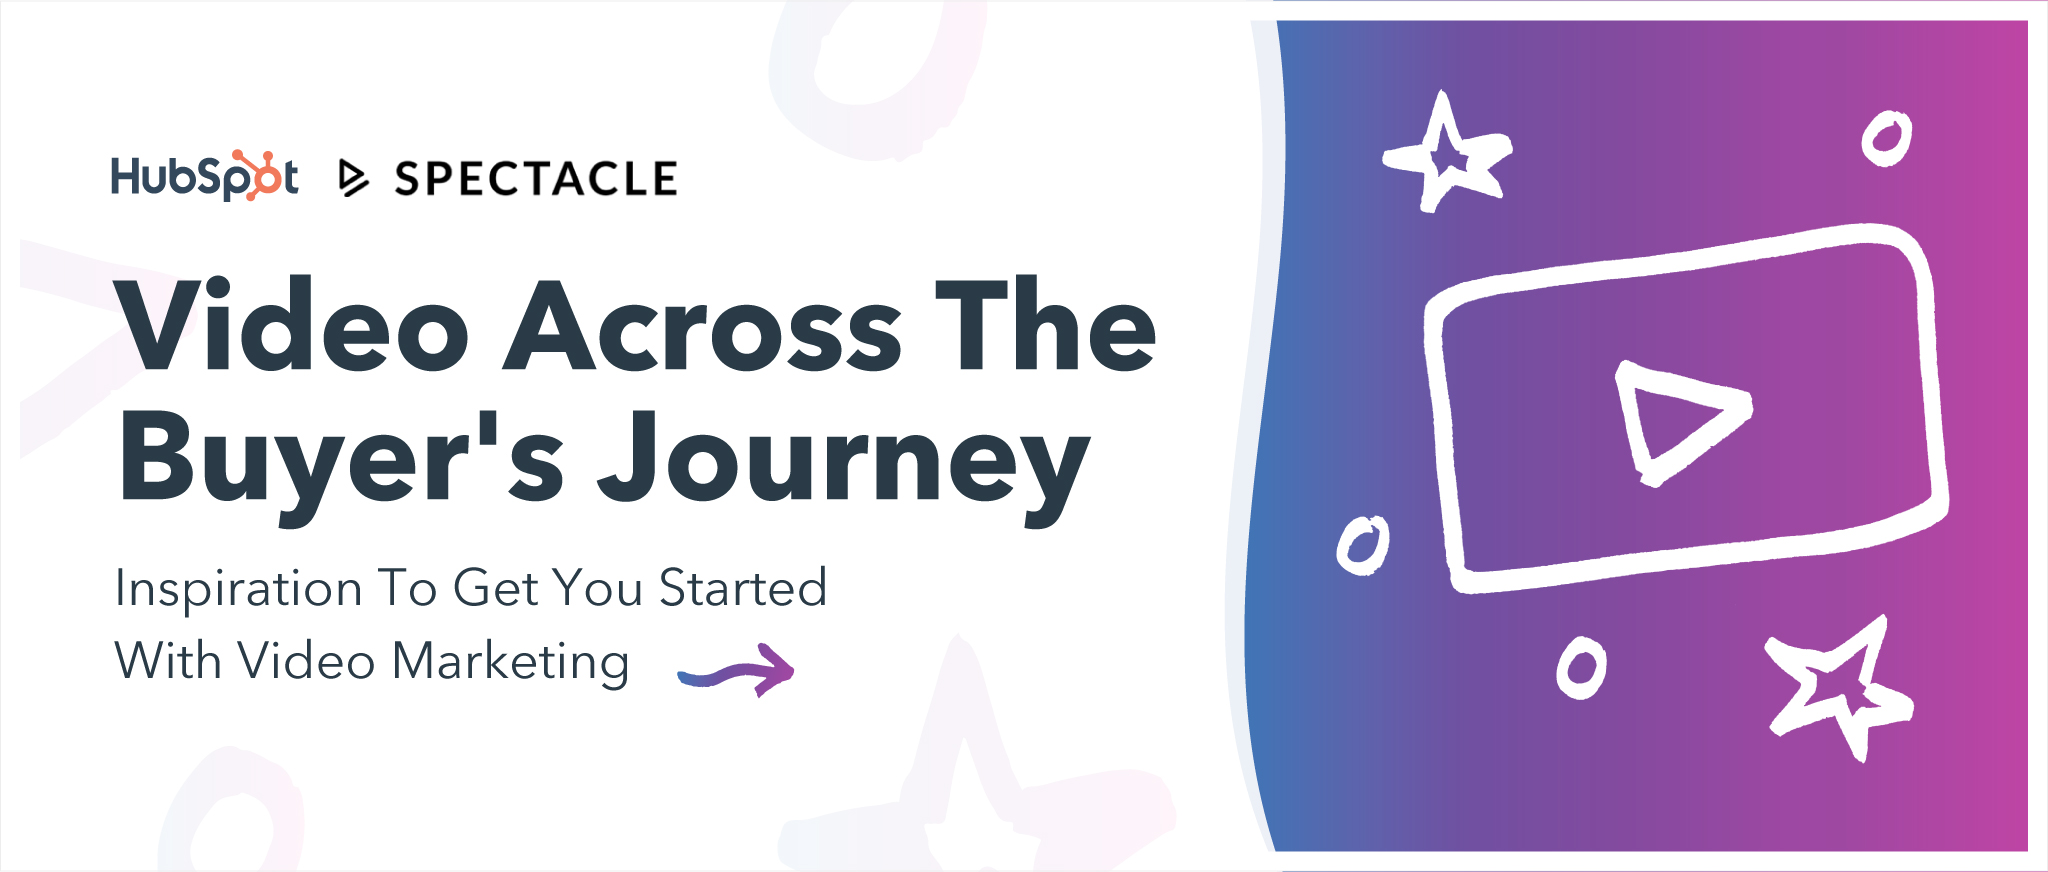 Video Across The Buyer's Journey